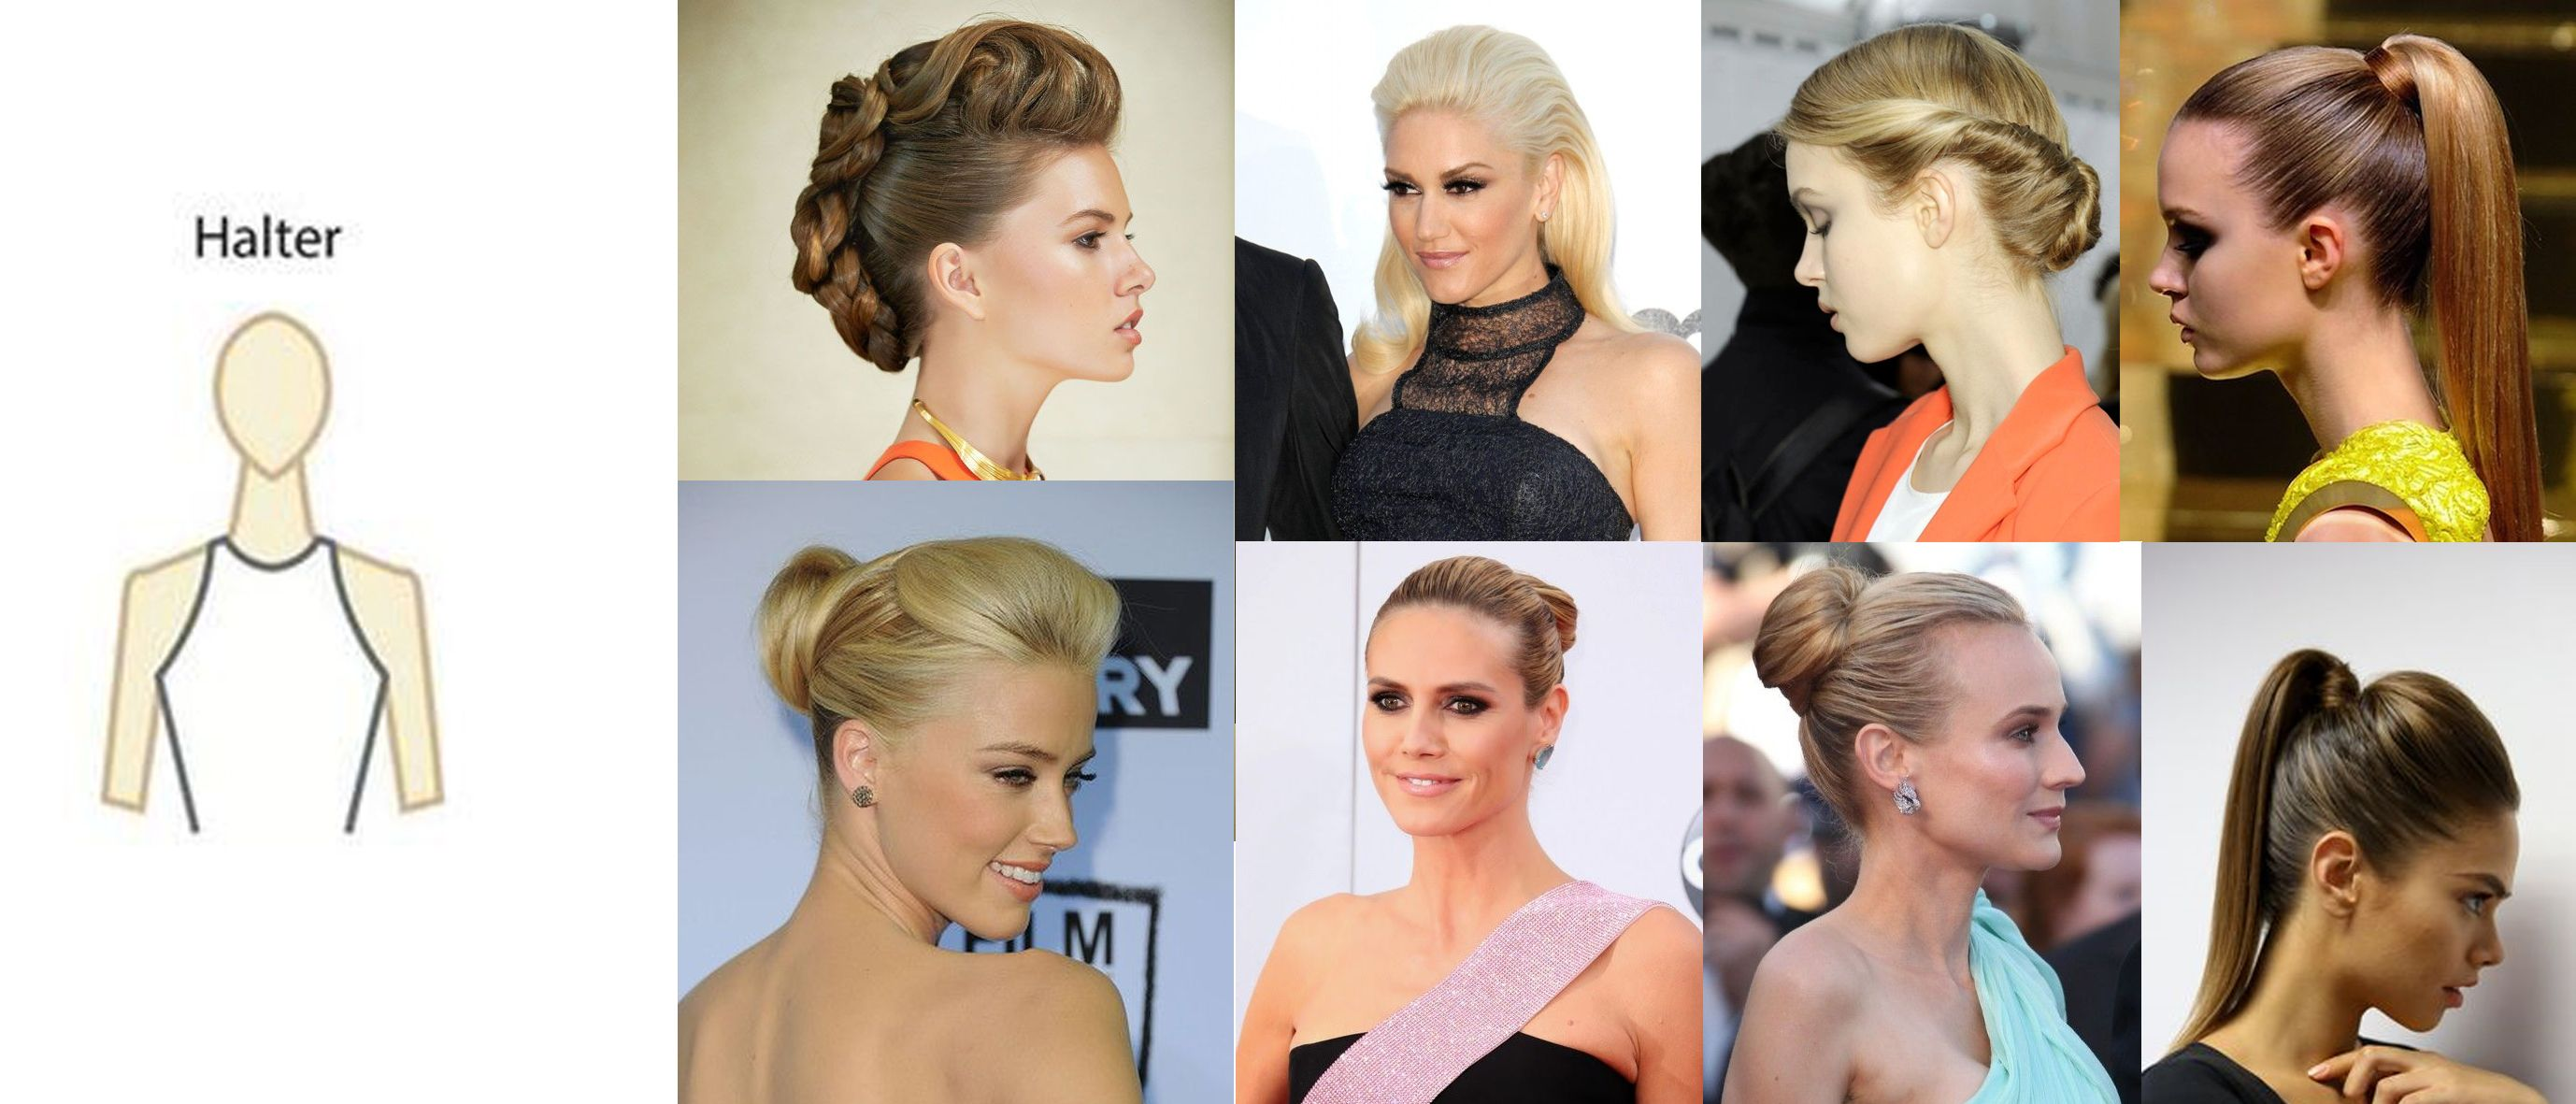 Prom Hairstyles for Halter Dresses